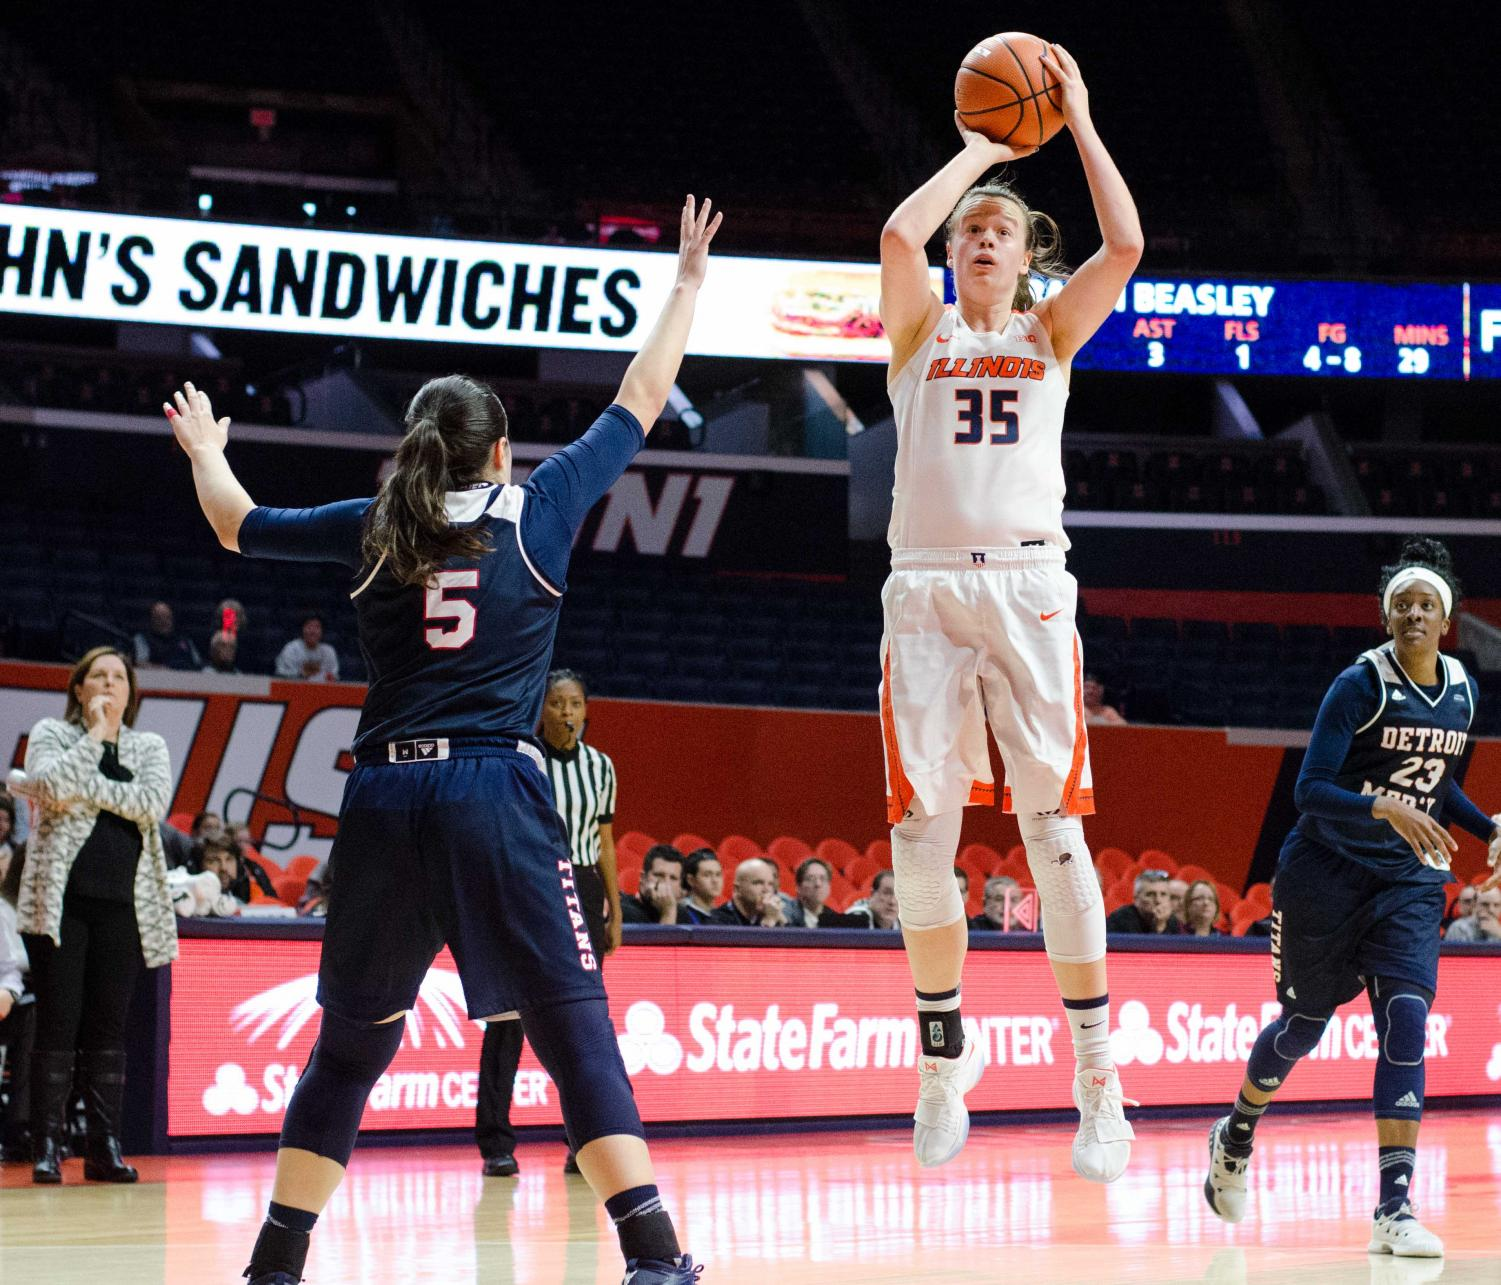 Alex Wittinger takes a shot for Illinois in their 73-65 win over Detroit Mercy on Dec. 10, 2017. The season hasn't gone as well as planned, with the team most recently sustaining a tough loss to Nebraska on Wednesday. Illinois' record is now 9-10.